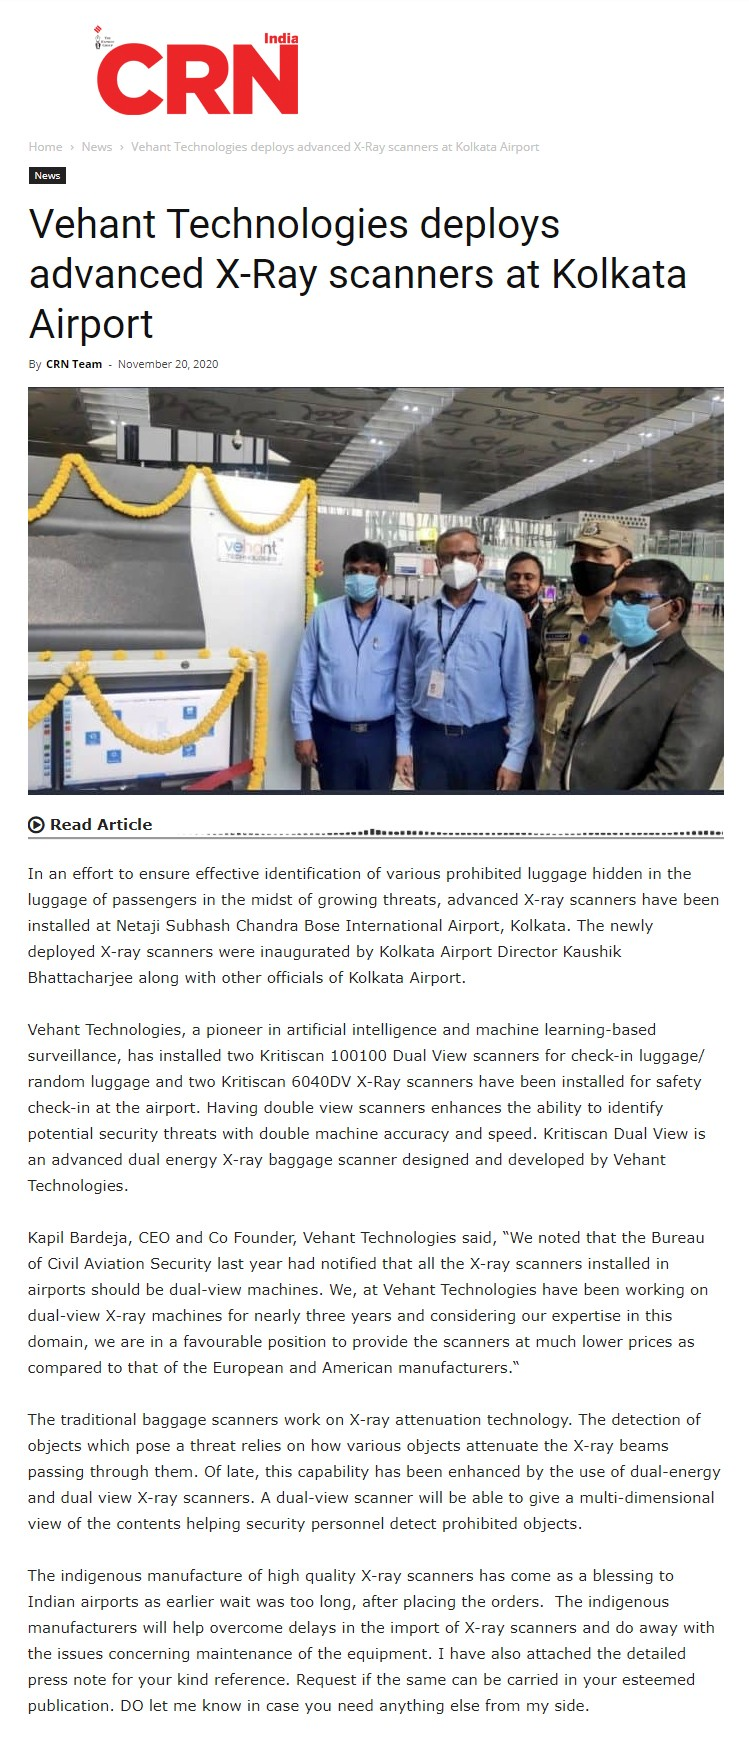 CRN News covers inauguration of dual view x-ray baggage scanners at Kolkata Airport on Novermber 20, 2020